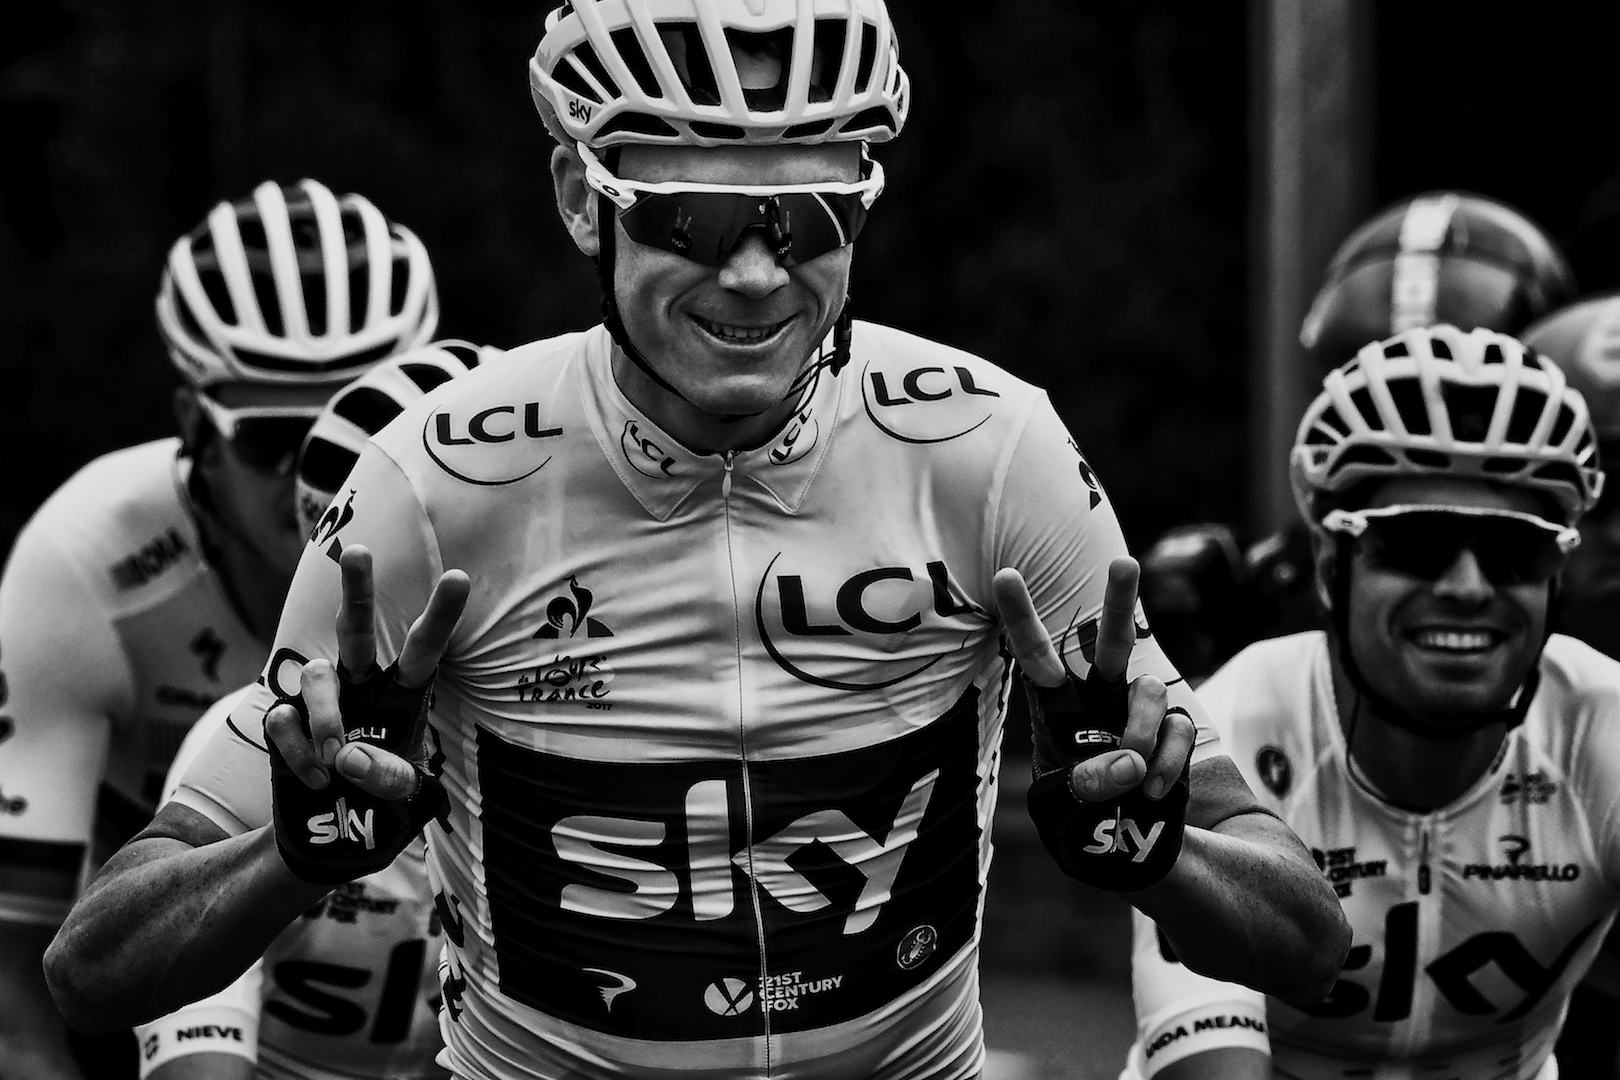 BLACK AND WHITE VERSION Great Britain's Christopher Froome (C) wearing the overall leader's yellow jersey flashes victory signs next to Spain's Mikel Landa during the 103 km twenty-first and last stage of the 104th edition of the Tour de France cycling race on July 23, 2017 between Montgeron and Paris Champs-Elysees. / AFP PHOTO / JEFF PACHOUD (Photo credit should read JEFF PACHOUD/AFP/Getty Images)